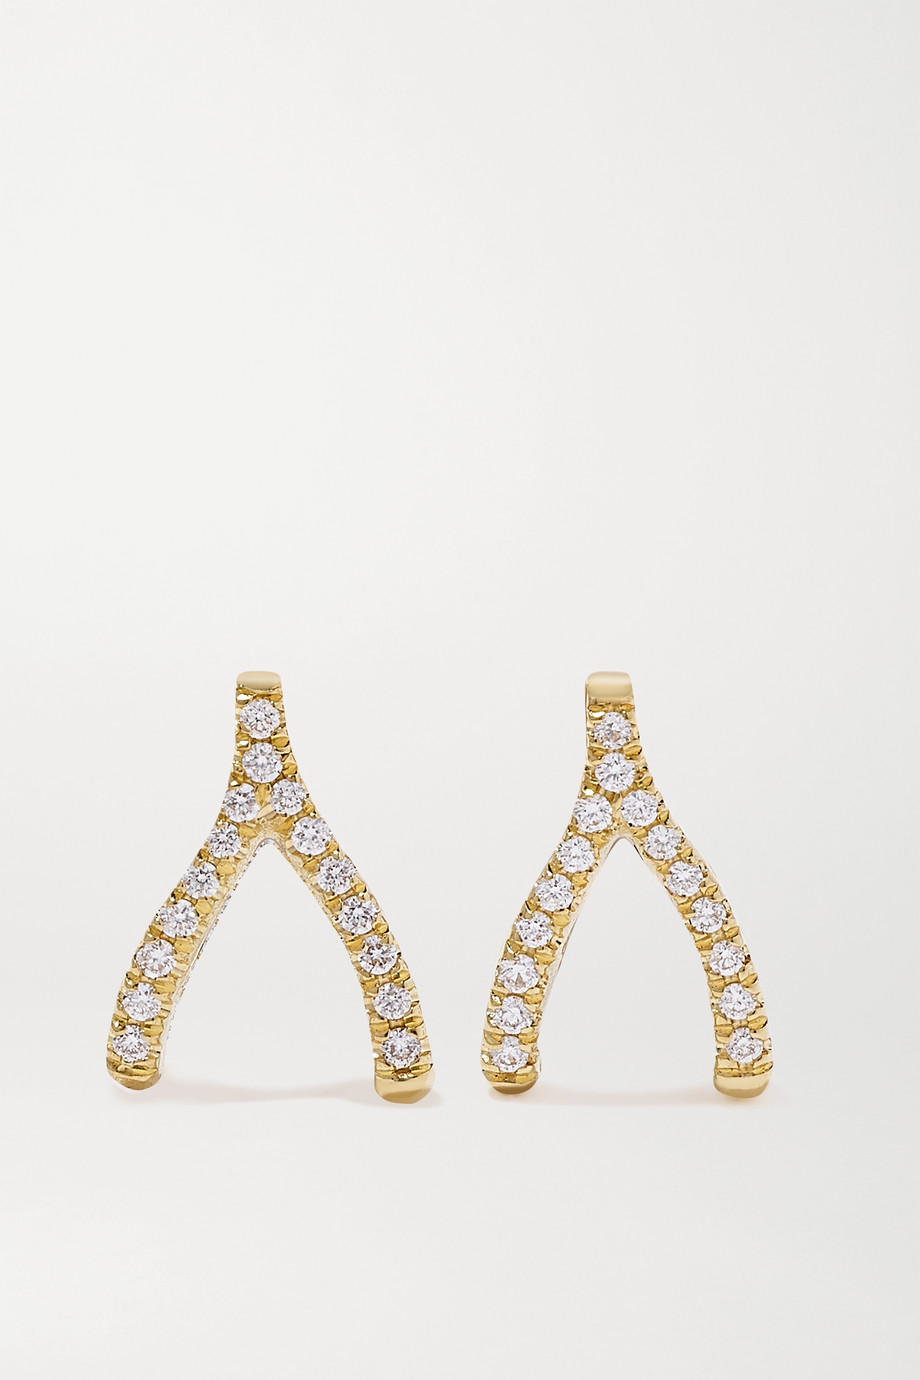 JENNIFER MEYER Mini Wishbone 18-karat gold diamond earrings